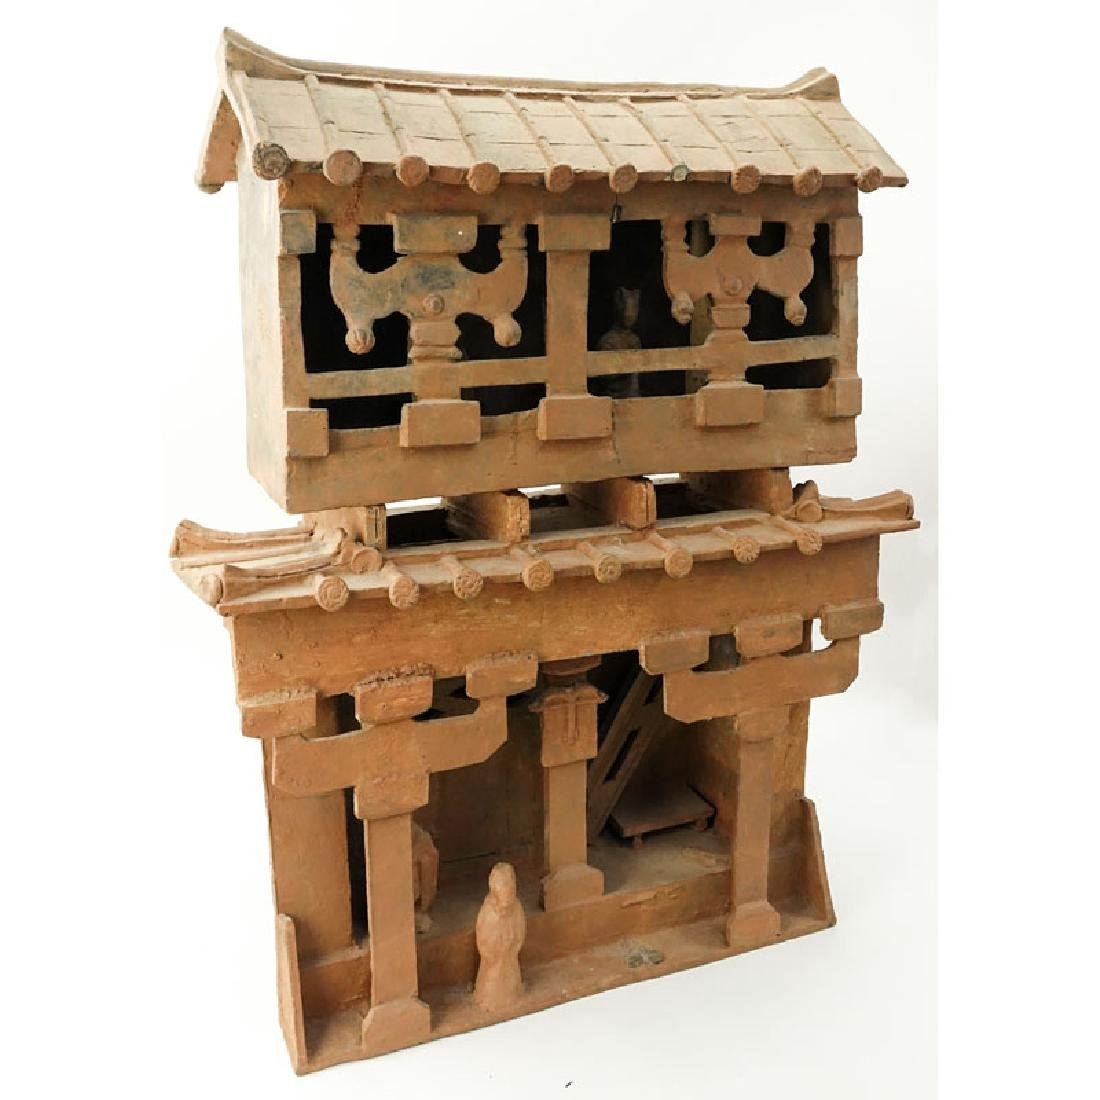 Early Chinese Pottery Shrine. Unsigned. Losses, typical